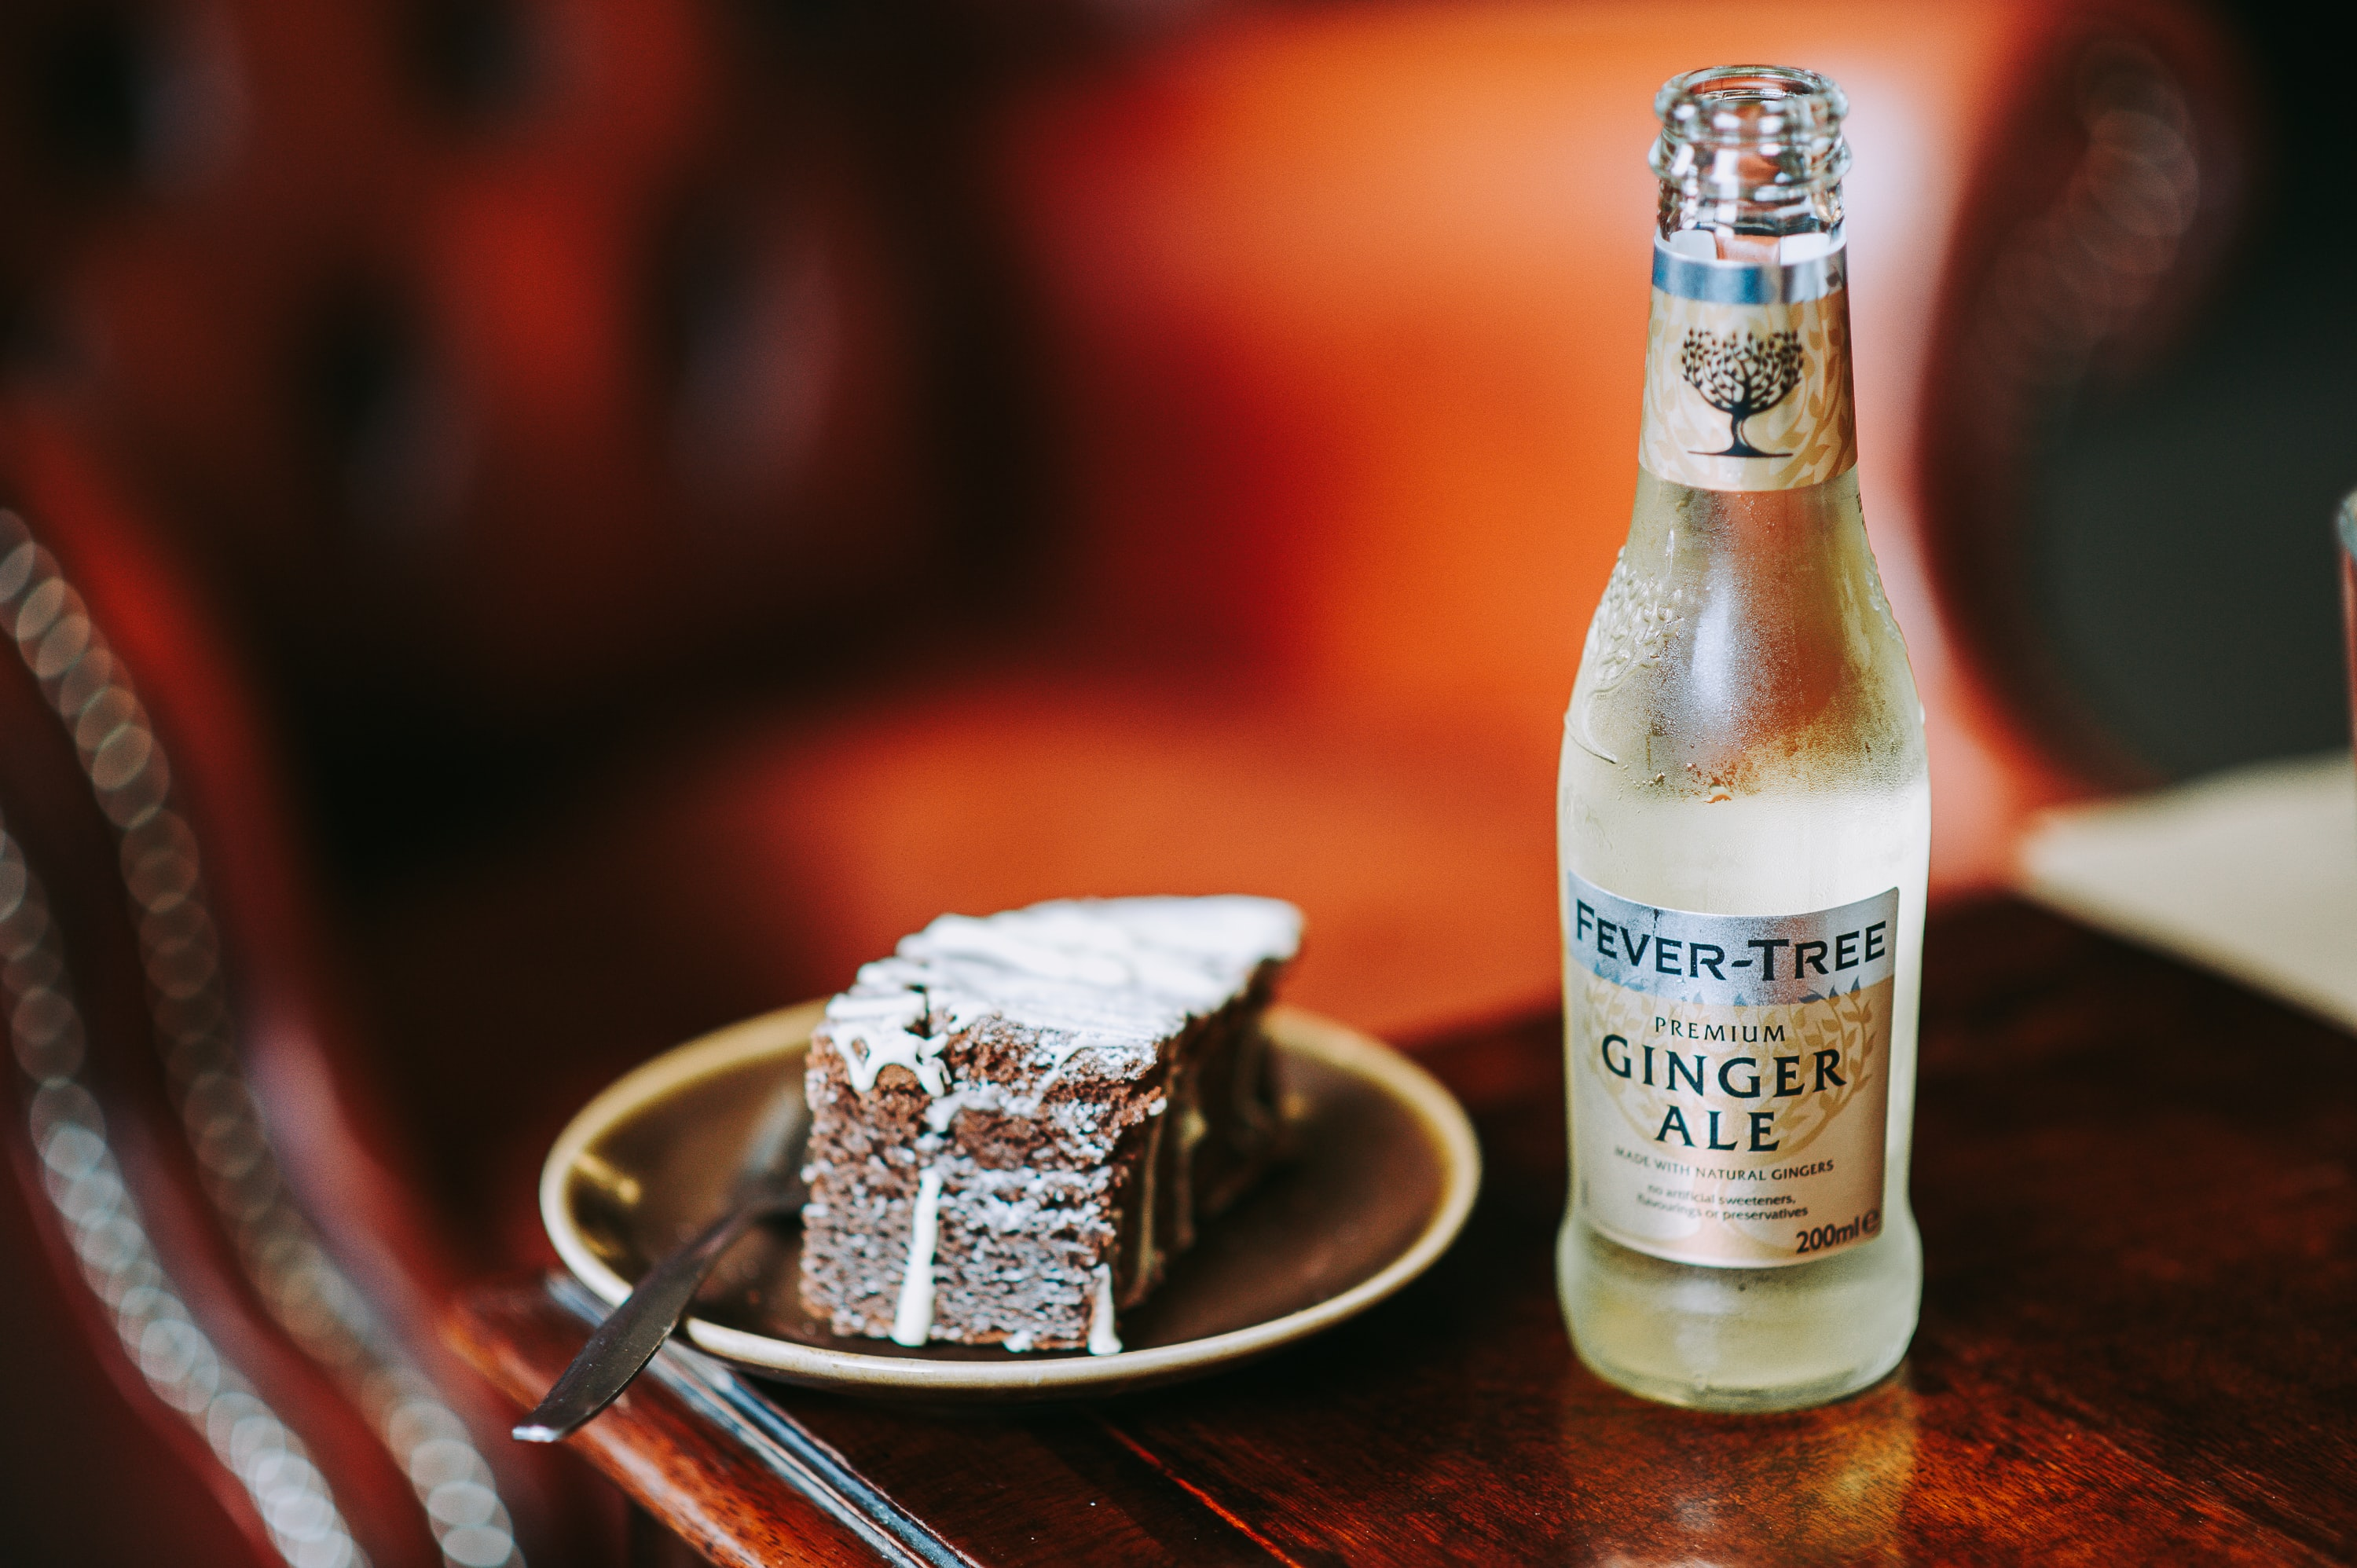 sliced cake on brown saucer beside fever-tree ginger ale bottle